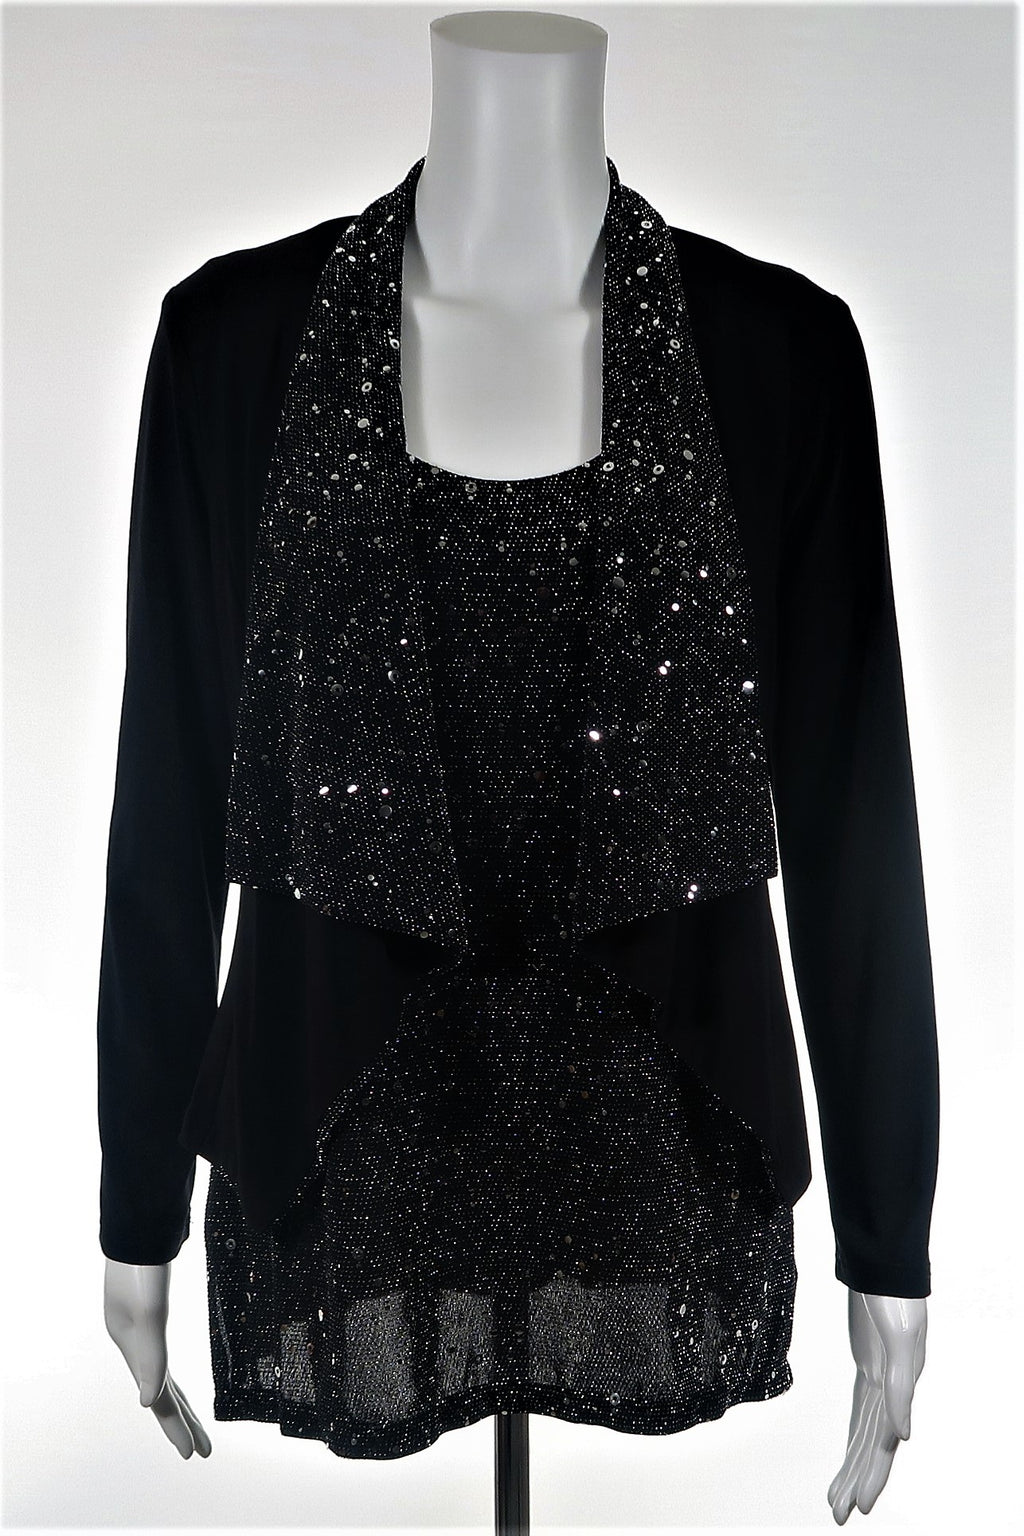 Moonlit Nights Hip Length Bolero